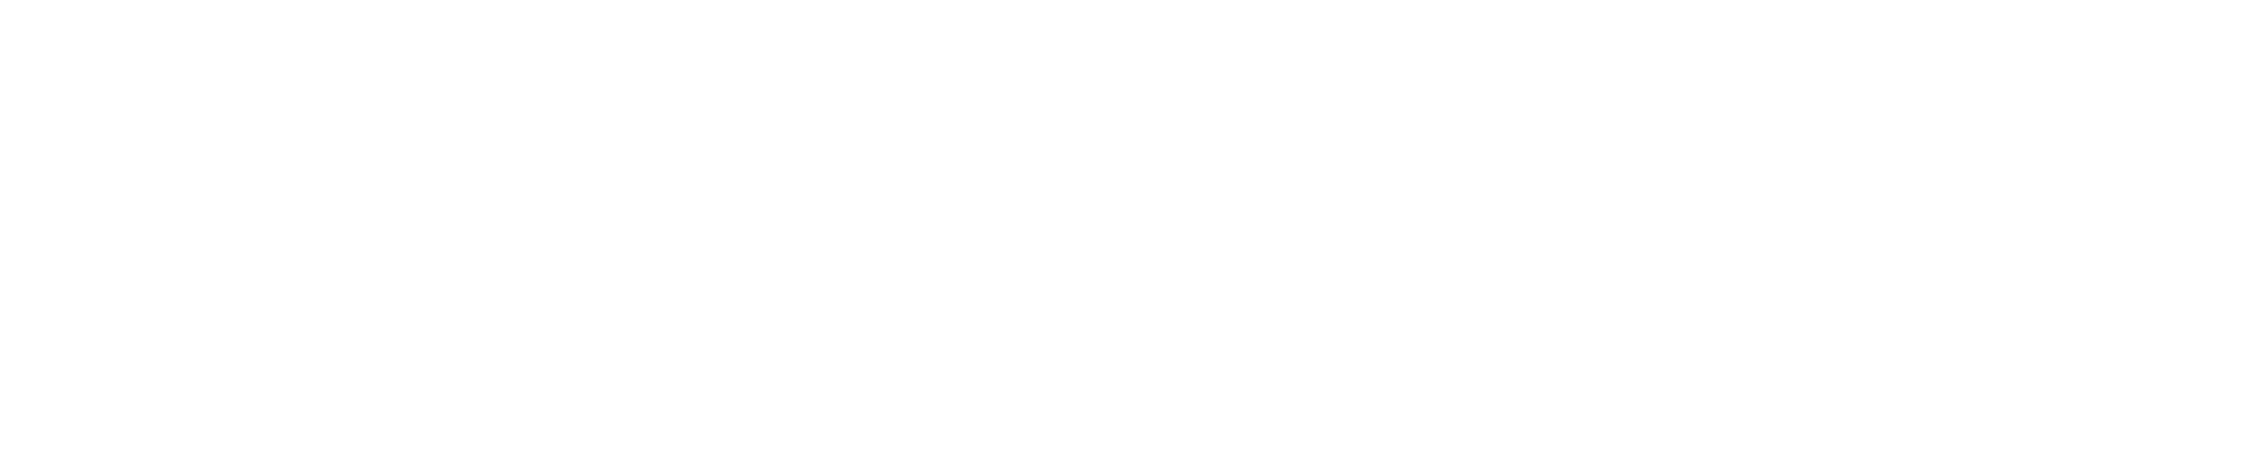 MAYORAL TRANSITION TEAM LOGO